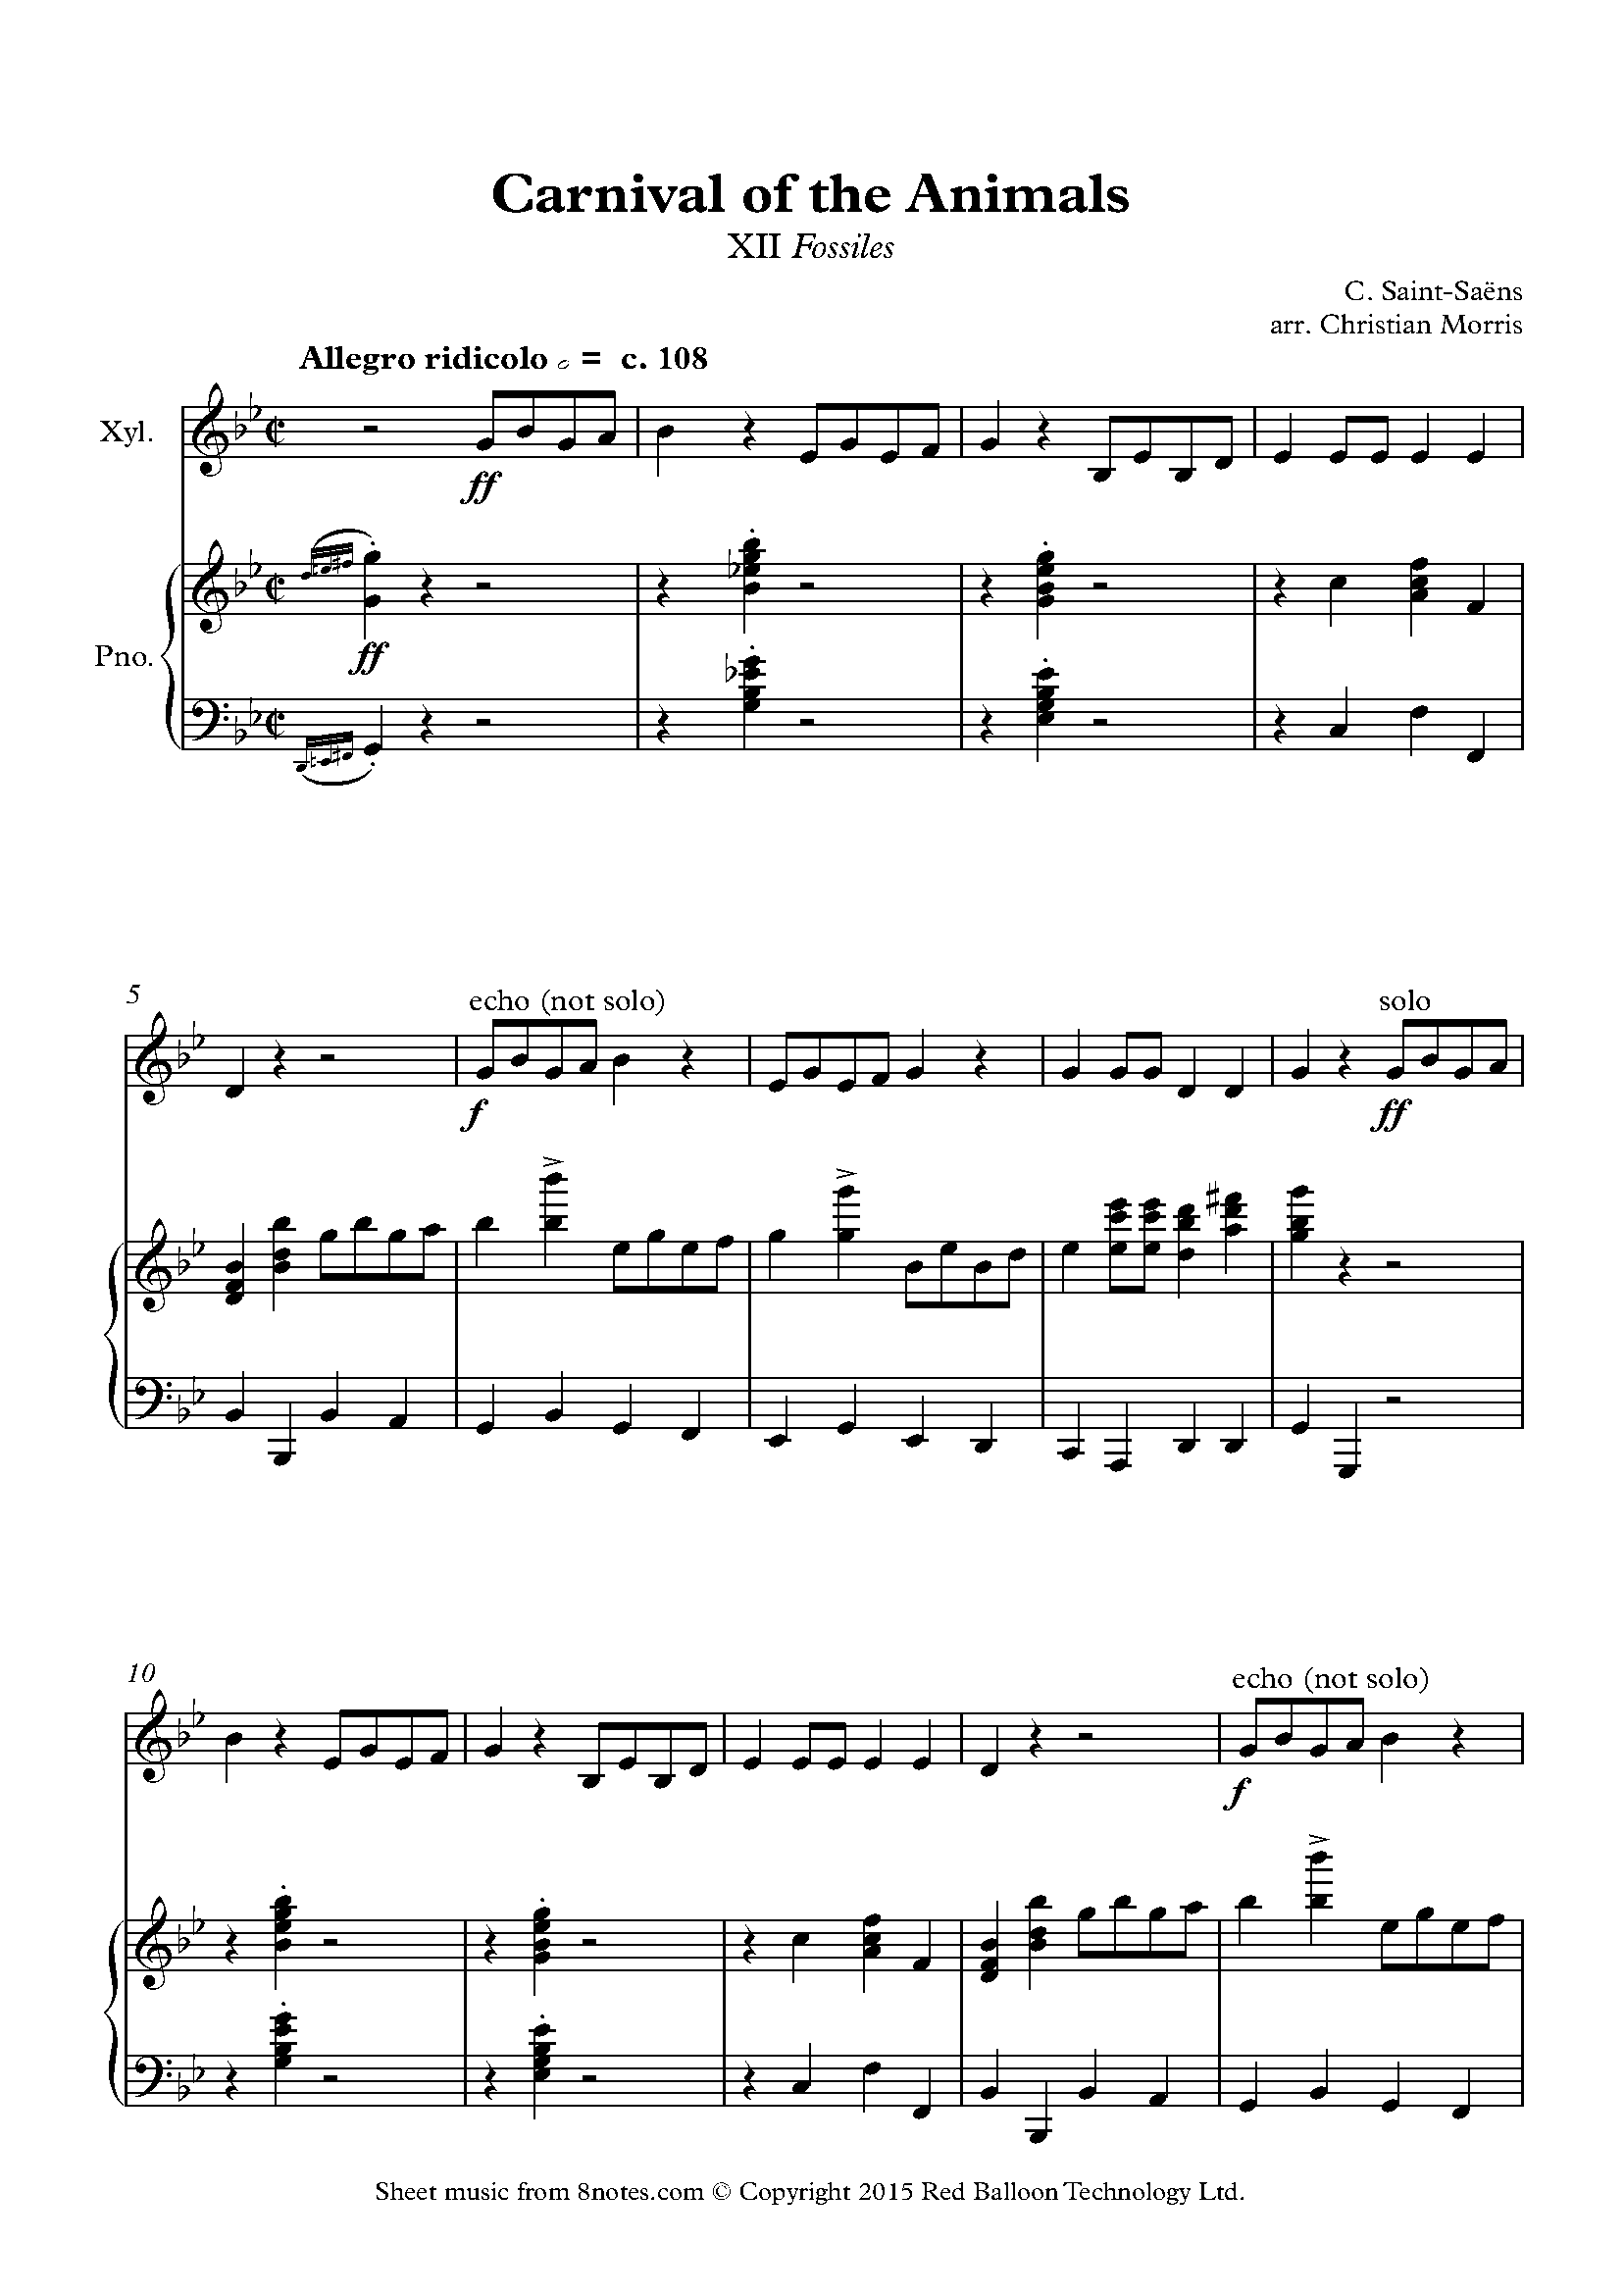 saint-saëns - xii fossiles from carnival of the animals (xylophone) sheet  music for percussion - 8notes.com  8notes